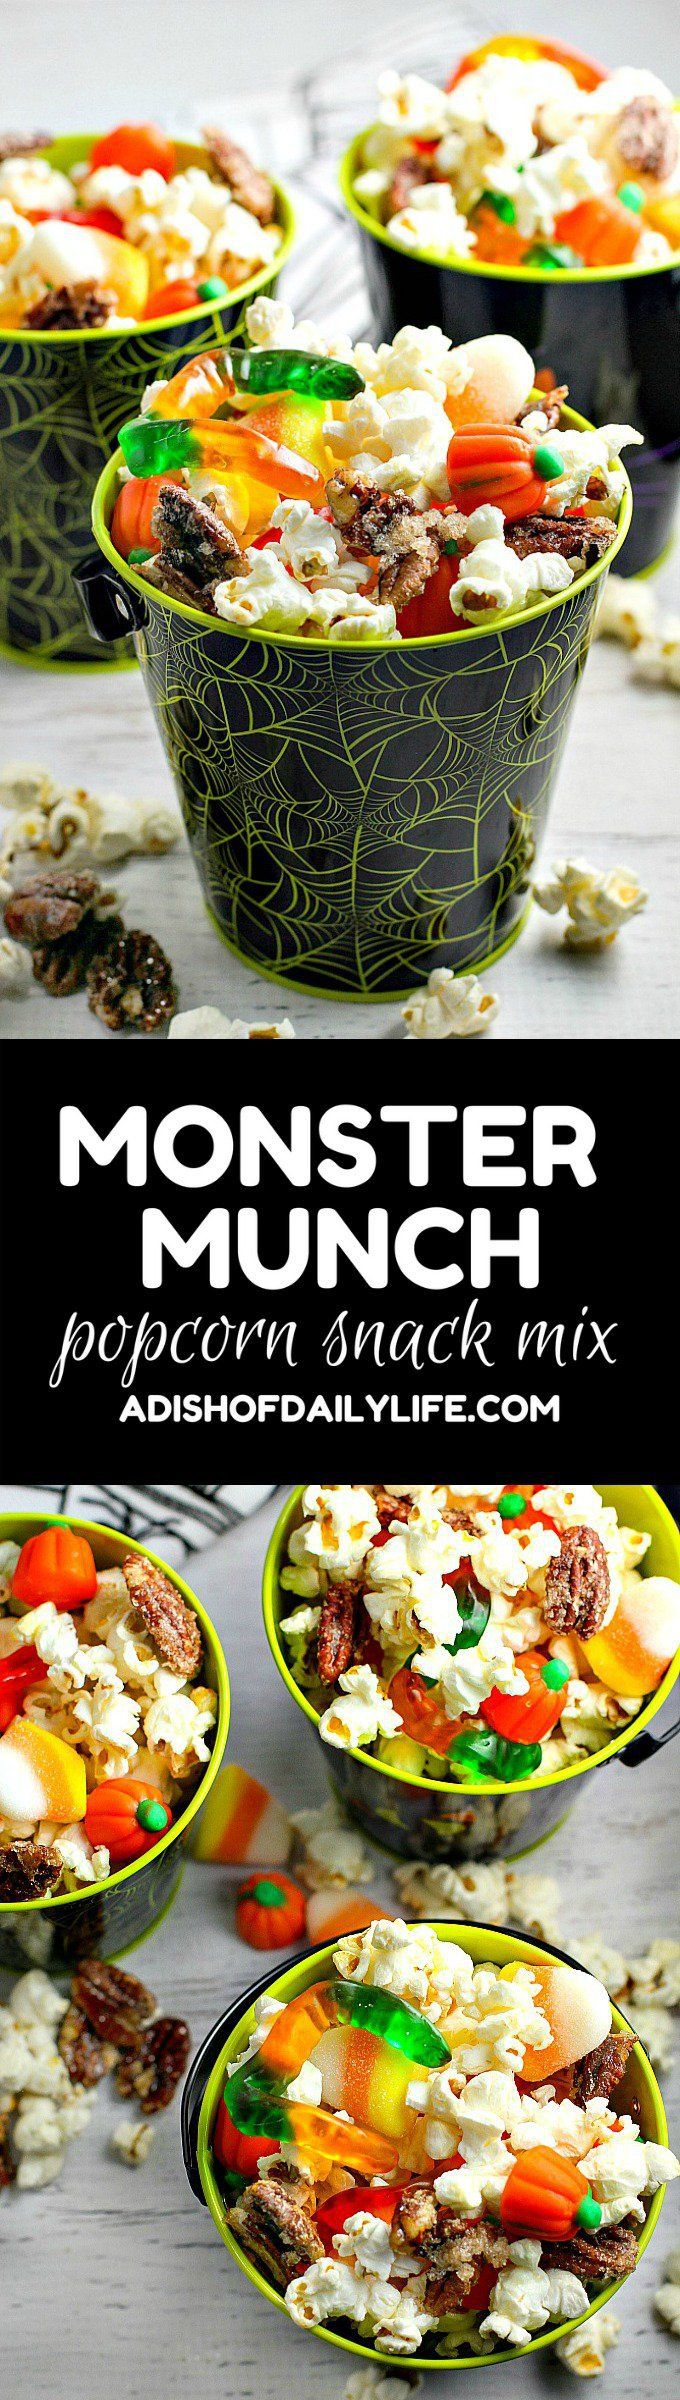 Monster Munch Popcorn Snack Mix is a fun Halloween snack for both kids and adults. Plus, the popcorn mix is easily customizable for any holiday theme!